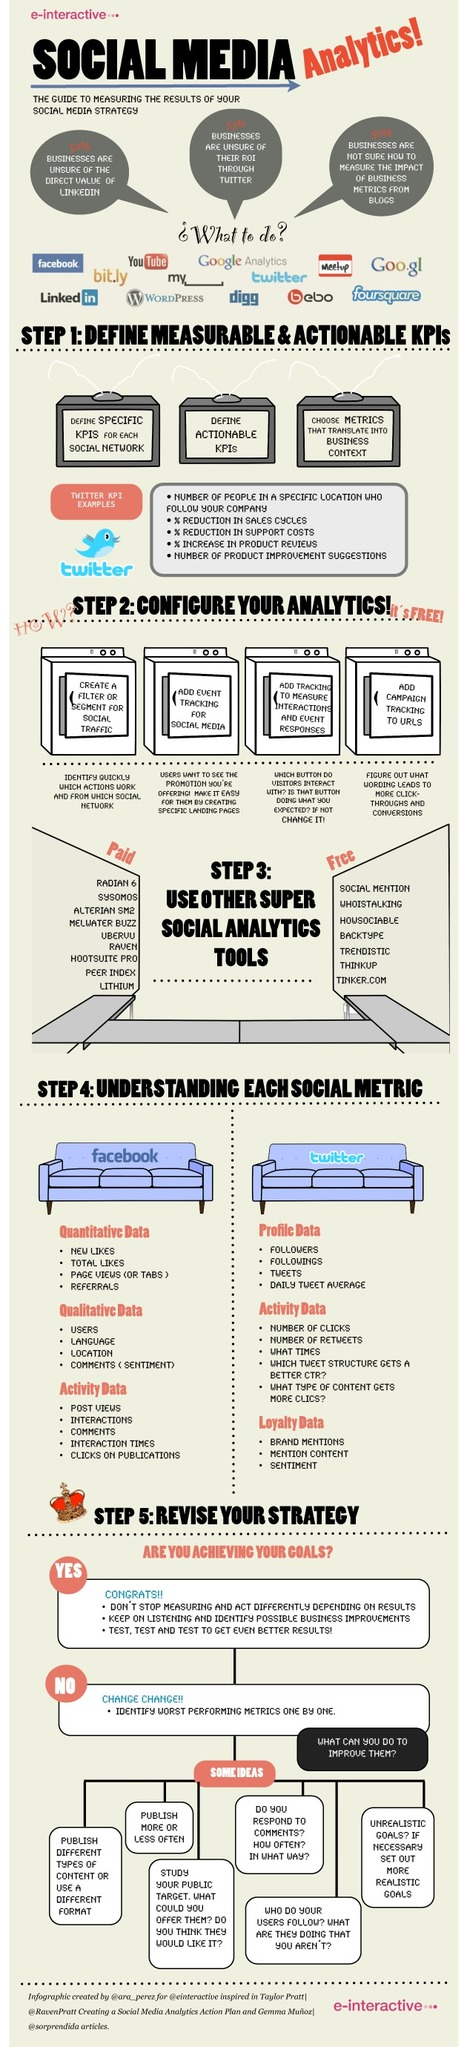 Measure Your Social Media Strategy with this Great Guide [Infographic] | Social Capital Net Worth | Scoop.it